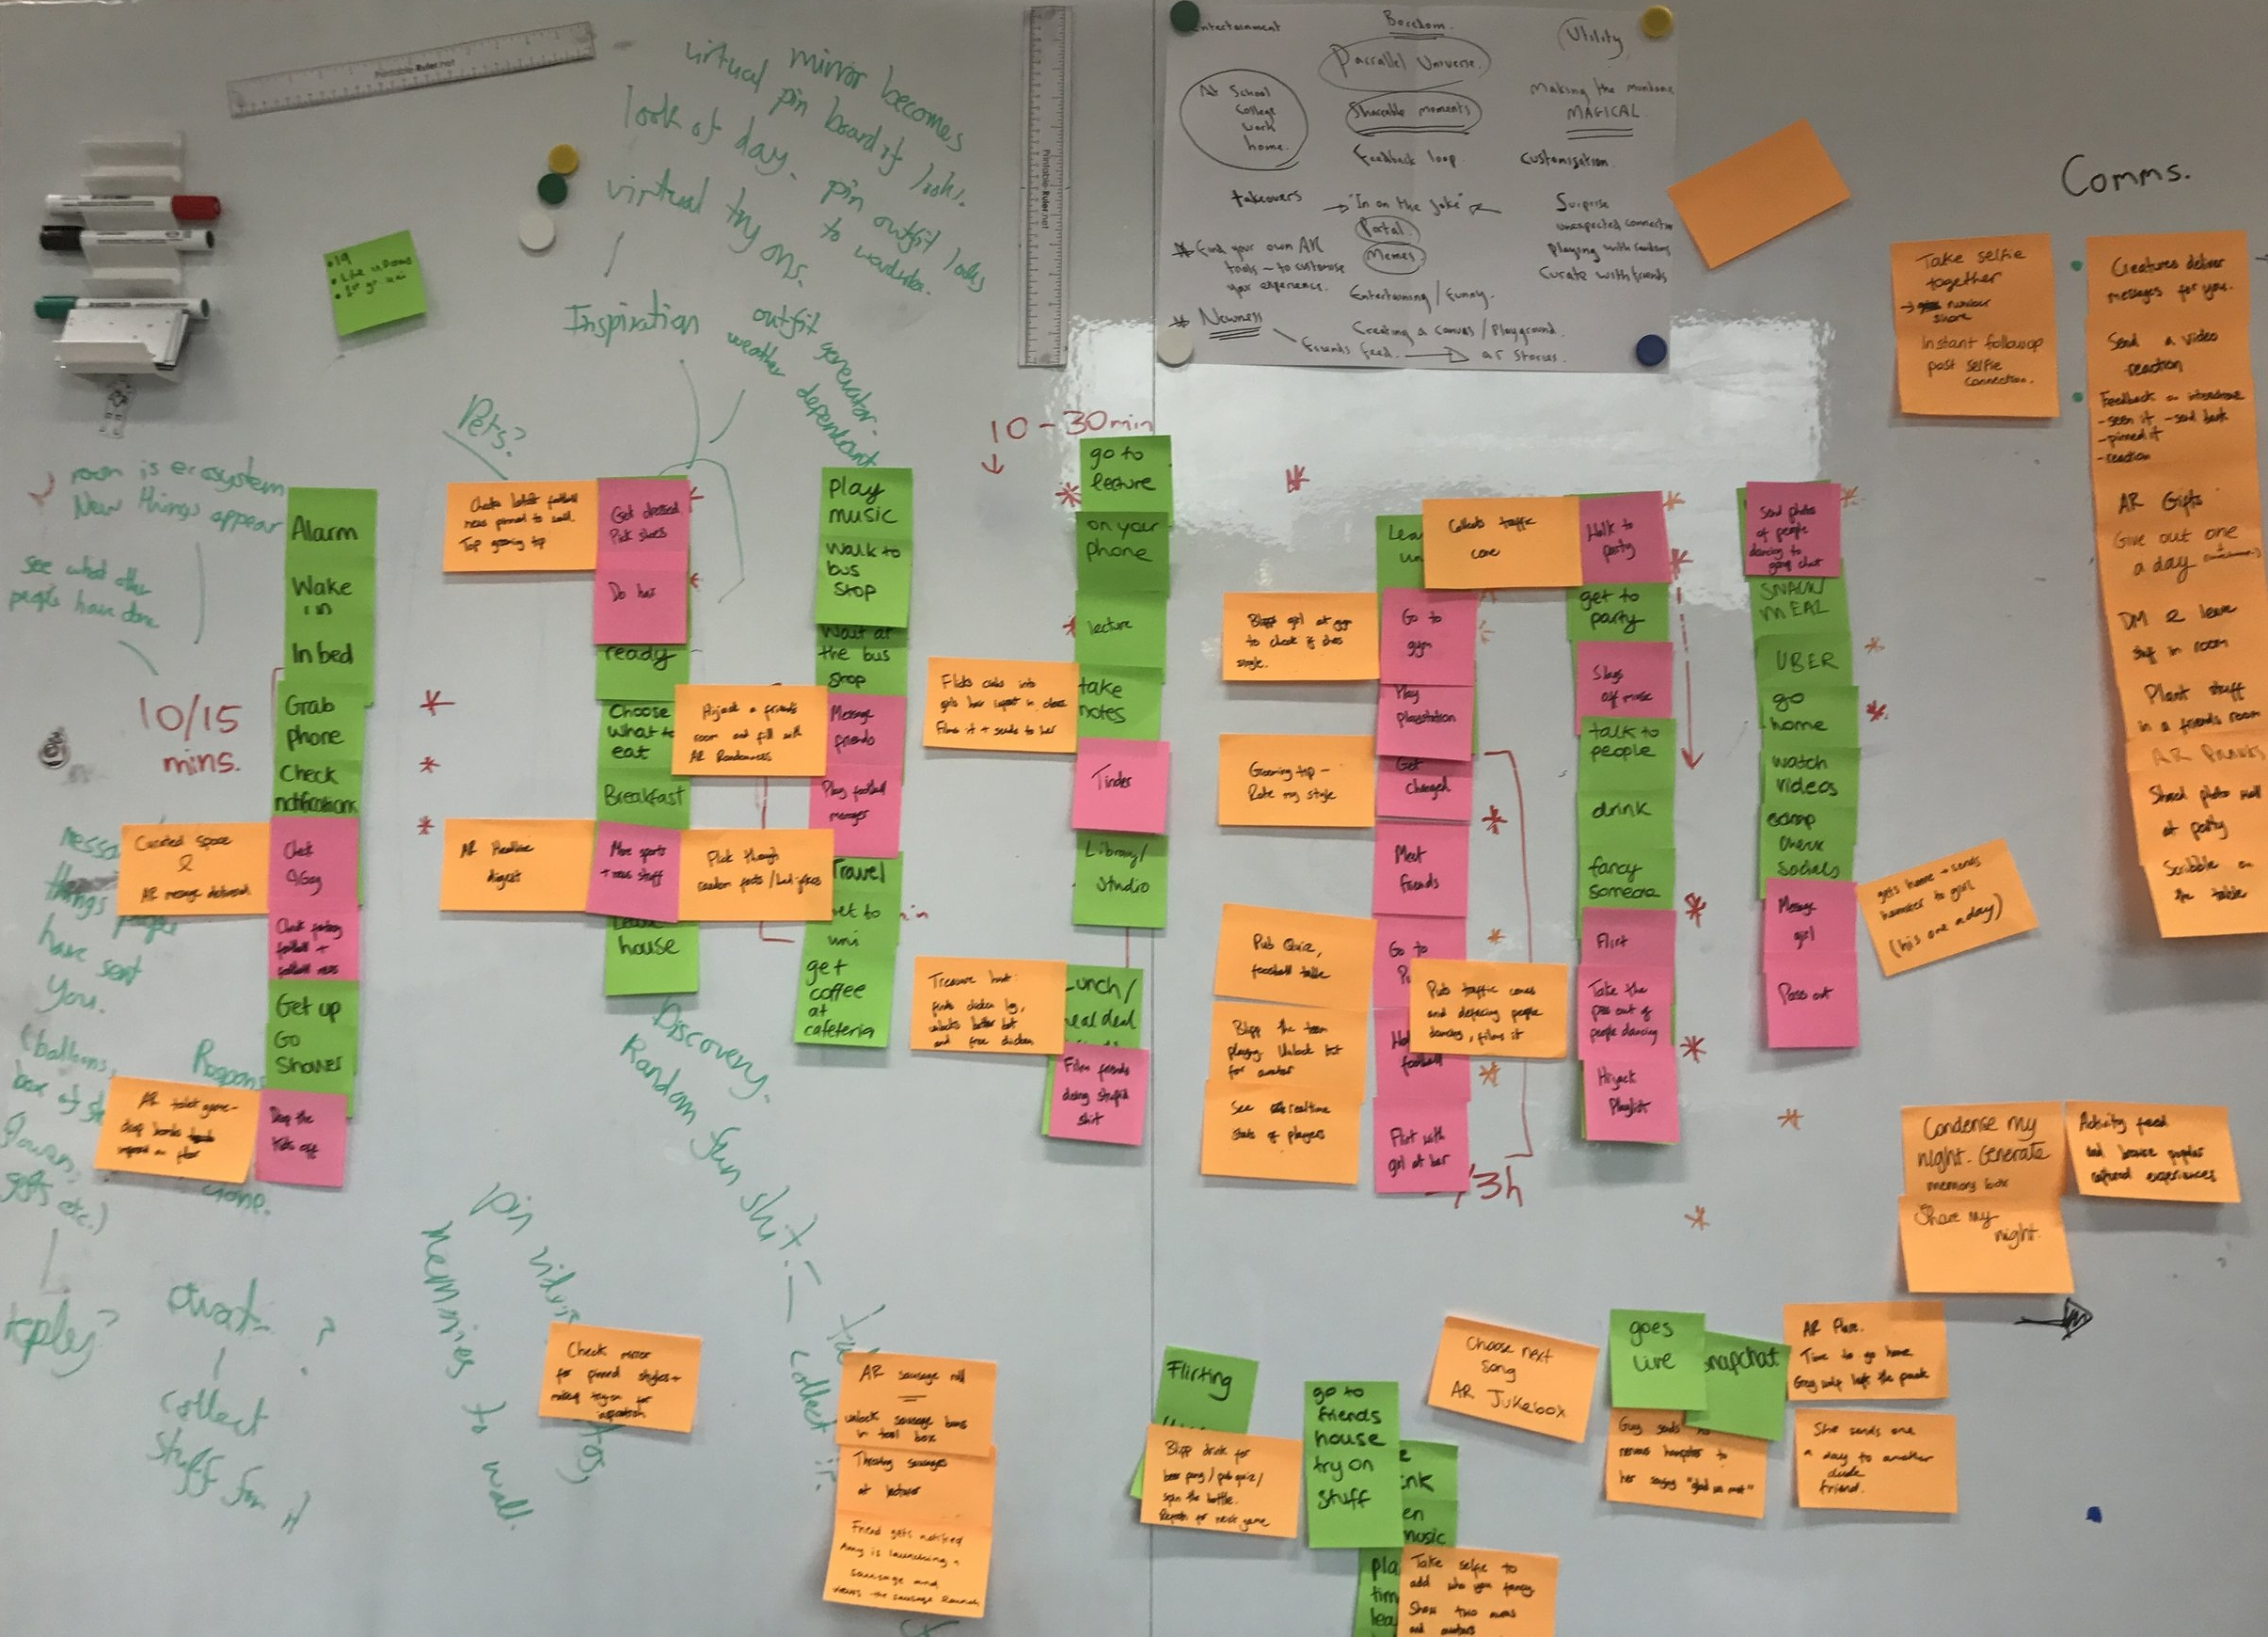 Ideation - A day in the life.